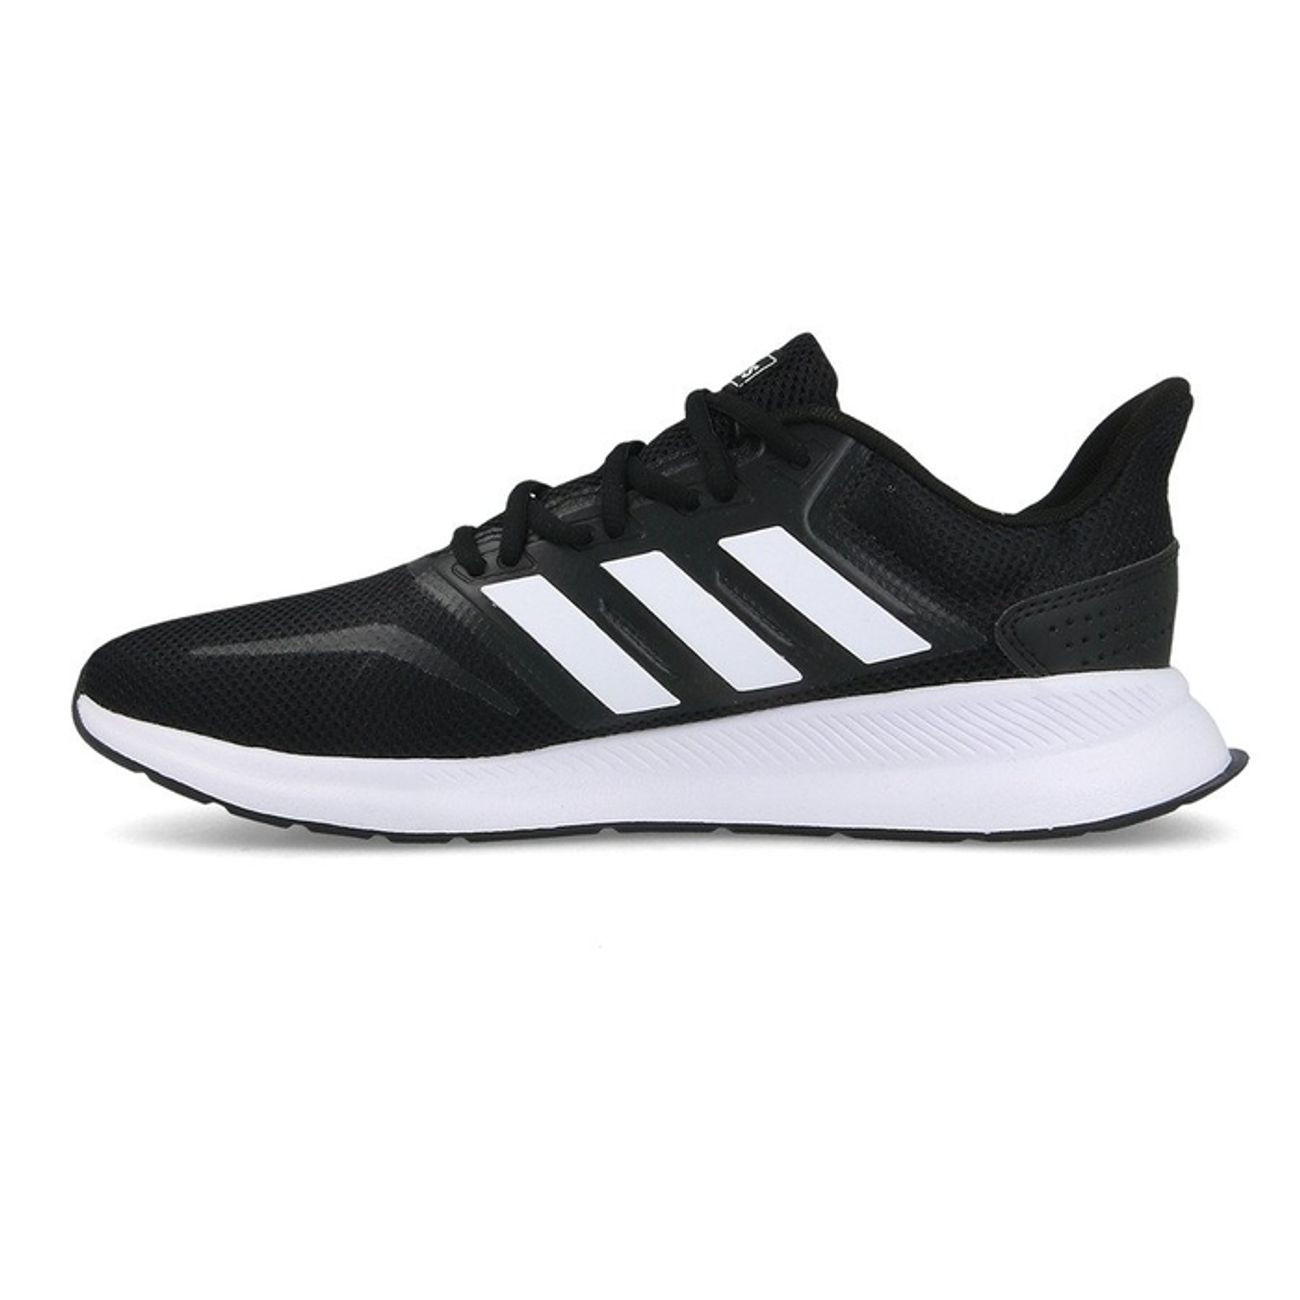 Running Chaussures RunfalconNoir Basses Homme Adidas uTPXwZiOk